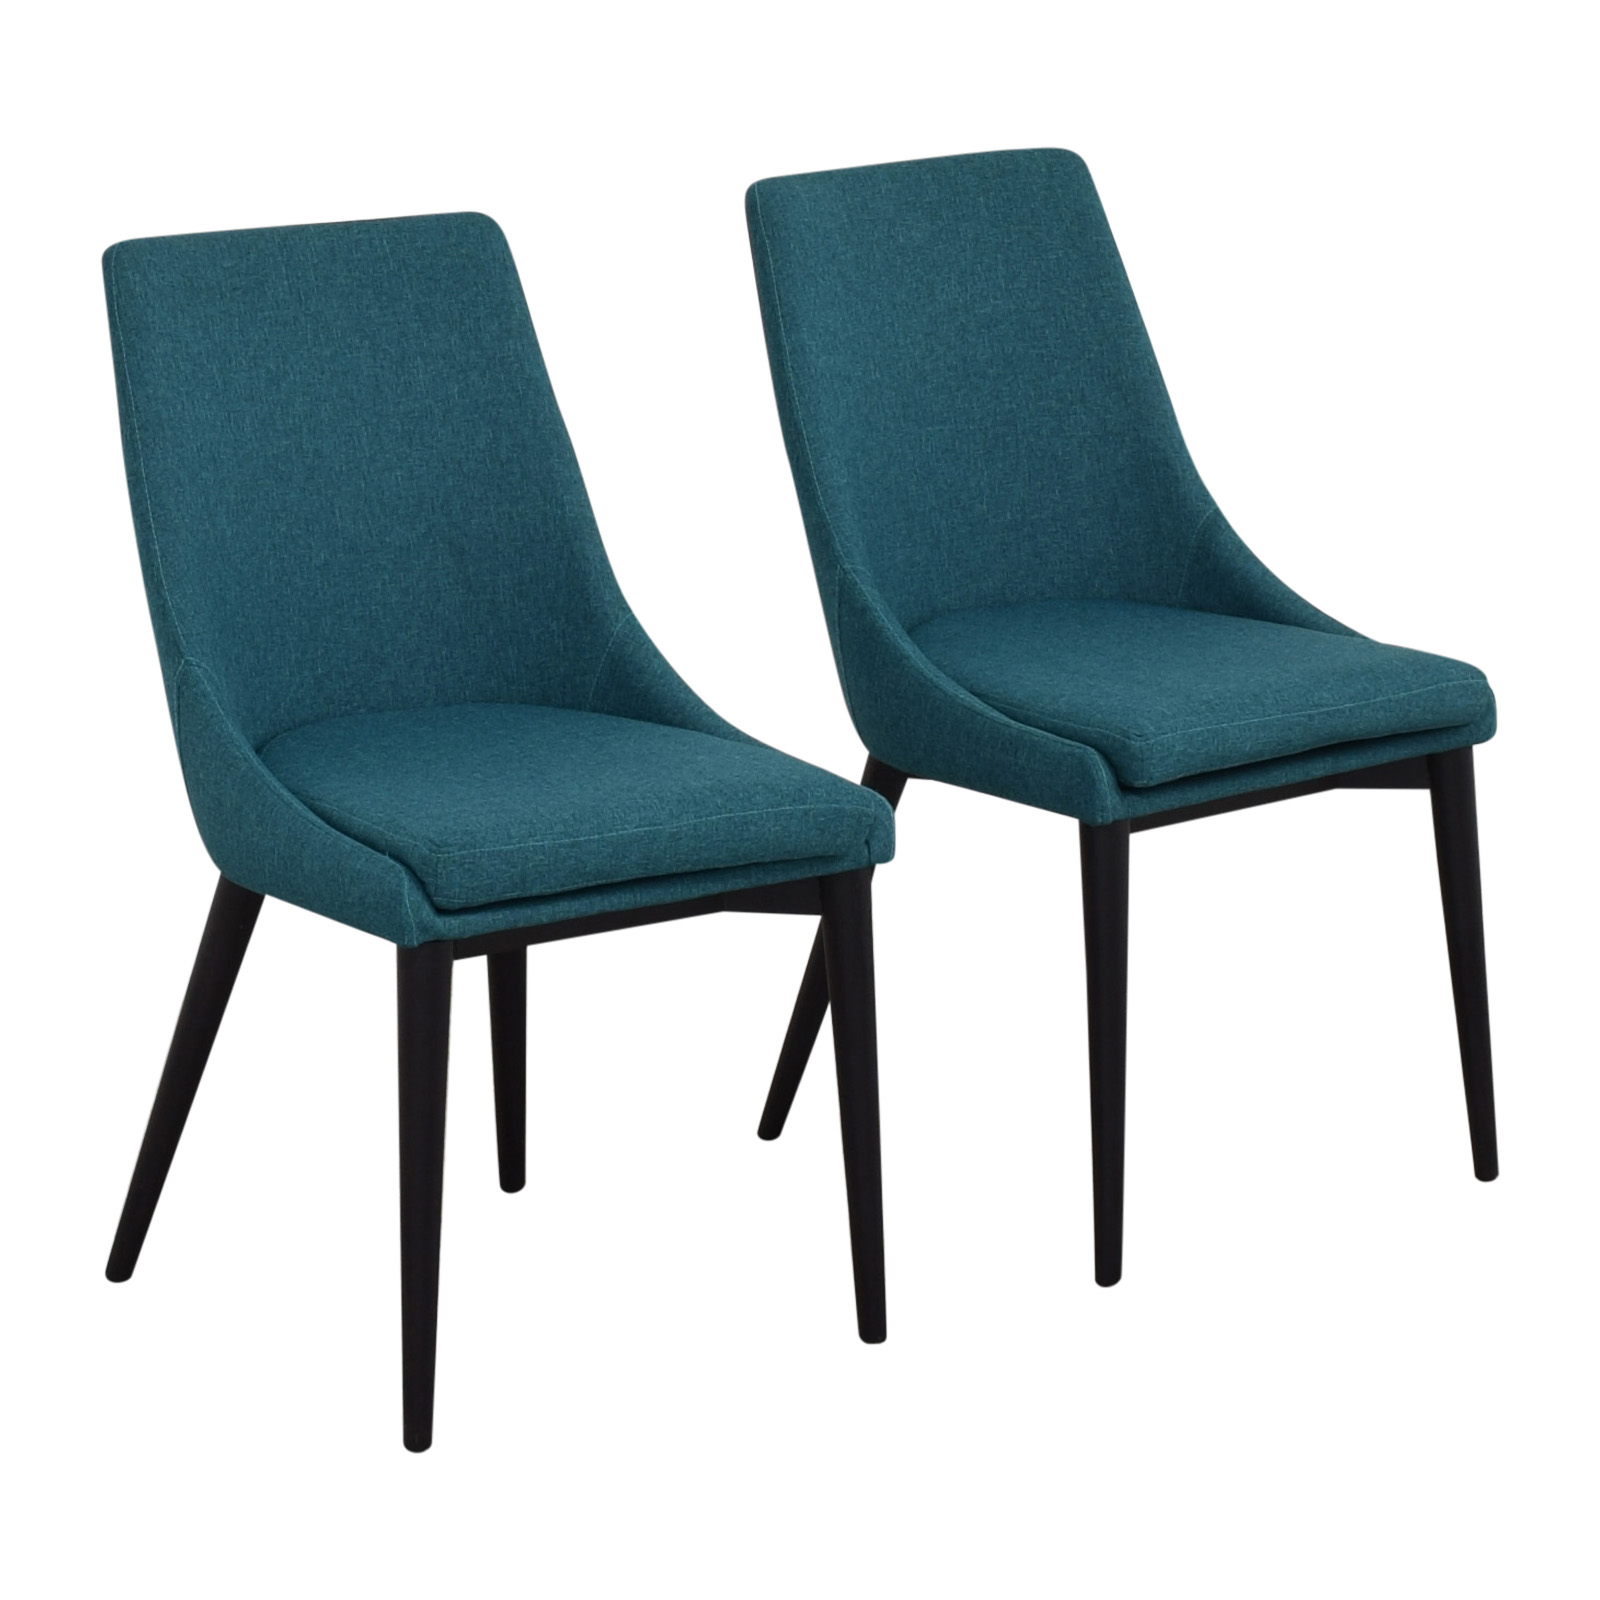 Modway Viscount Dining Chairs / Chairs